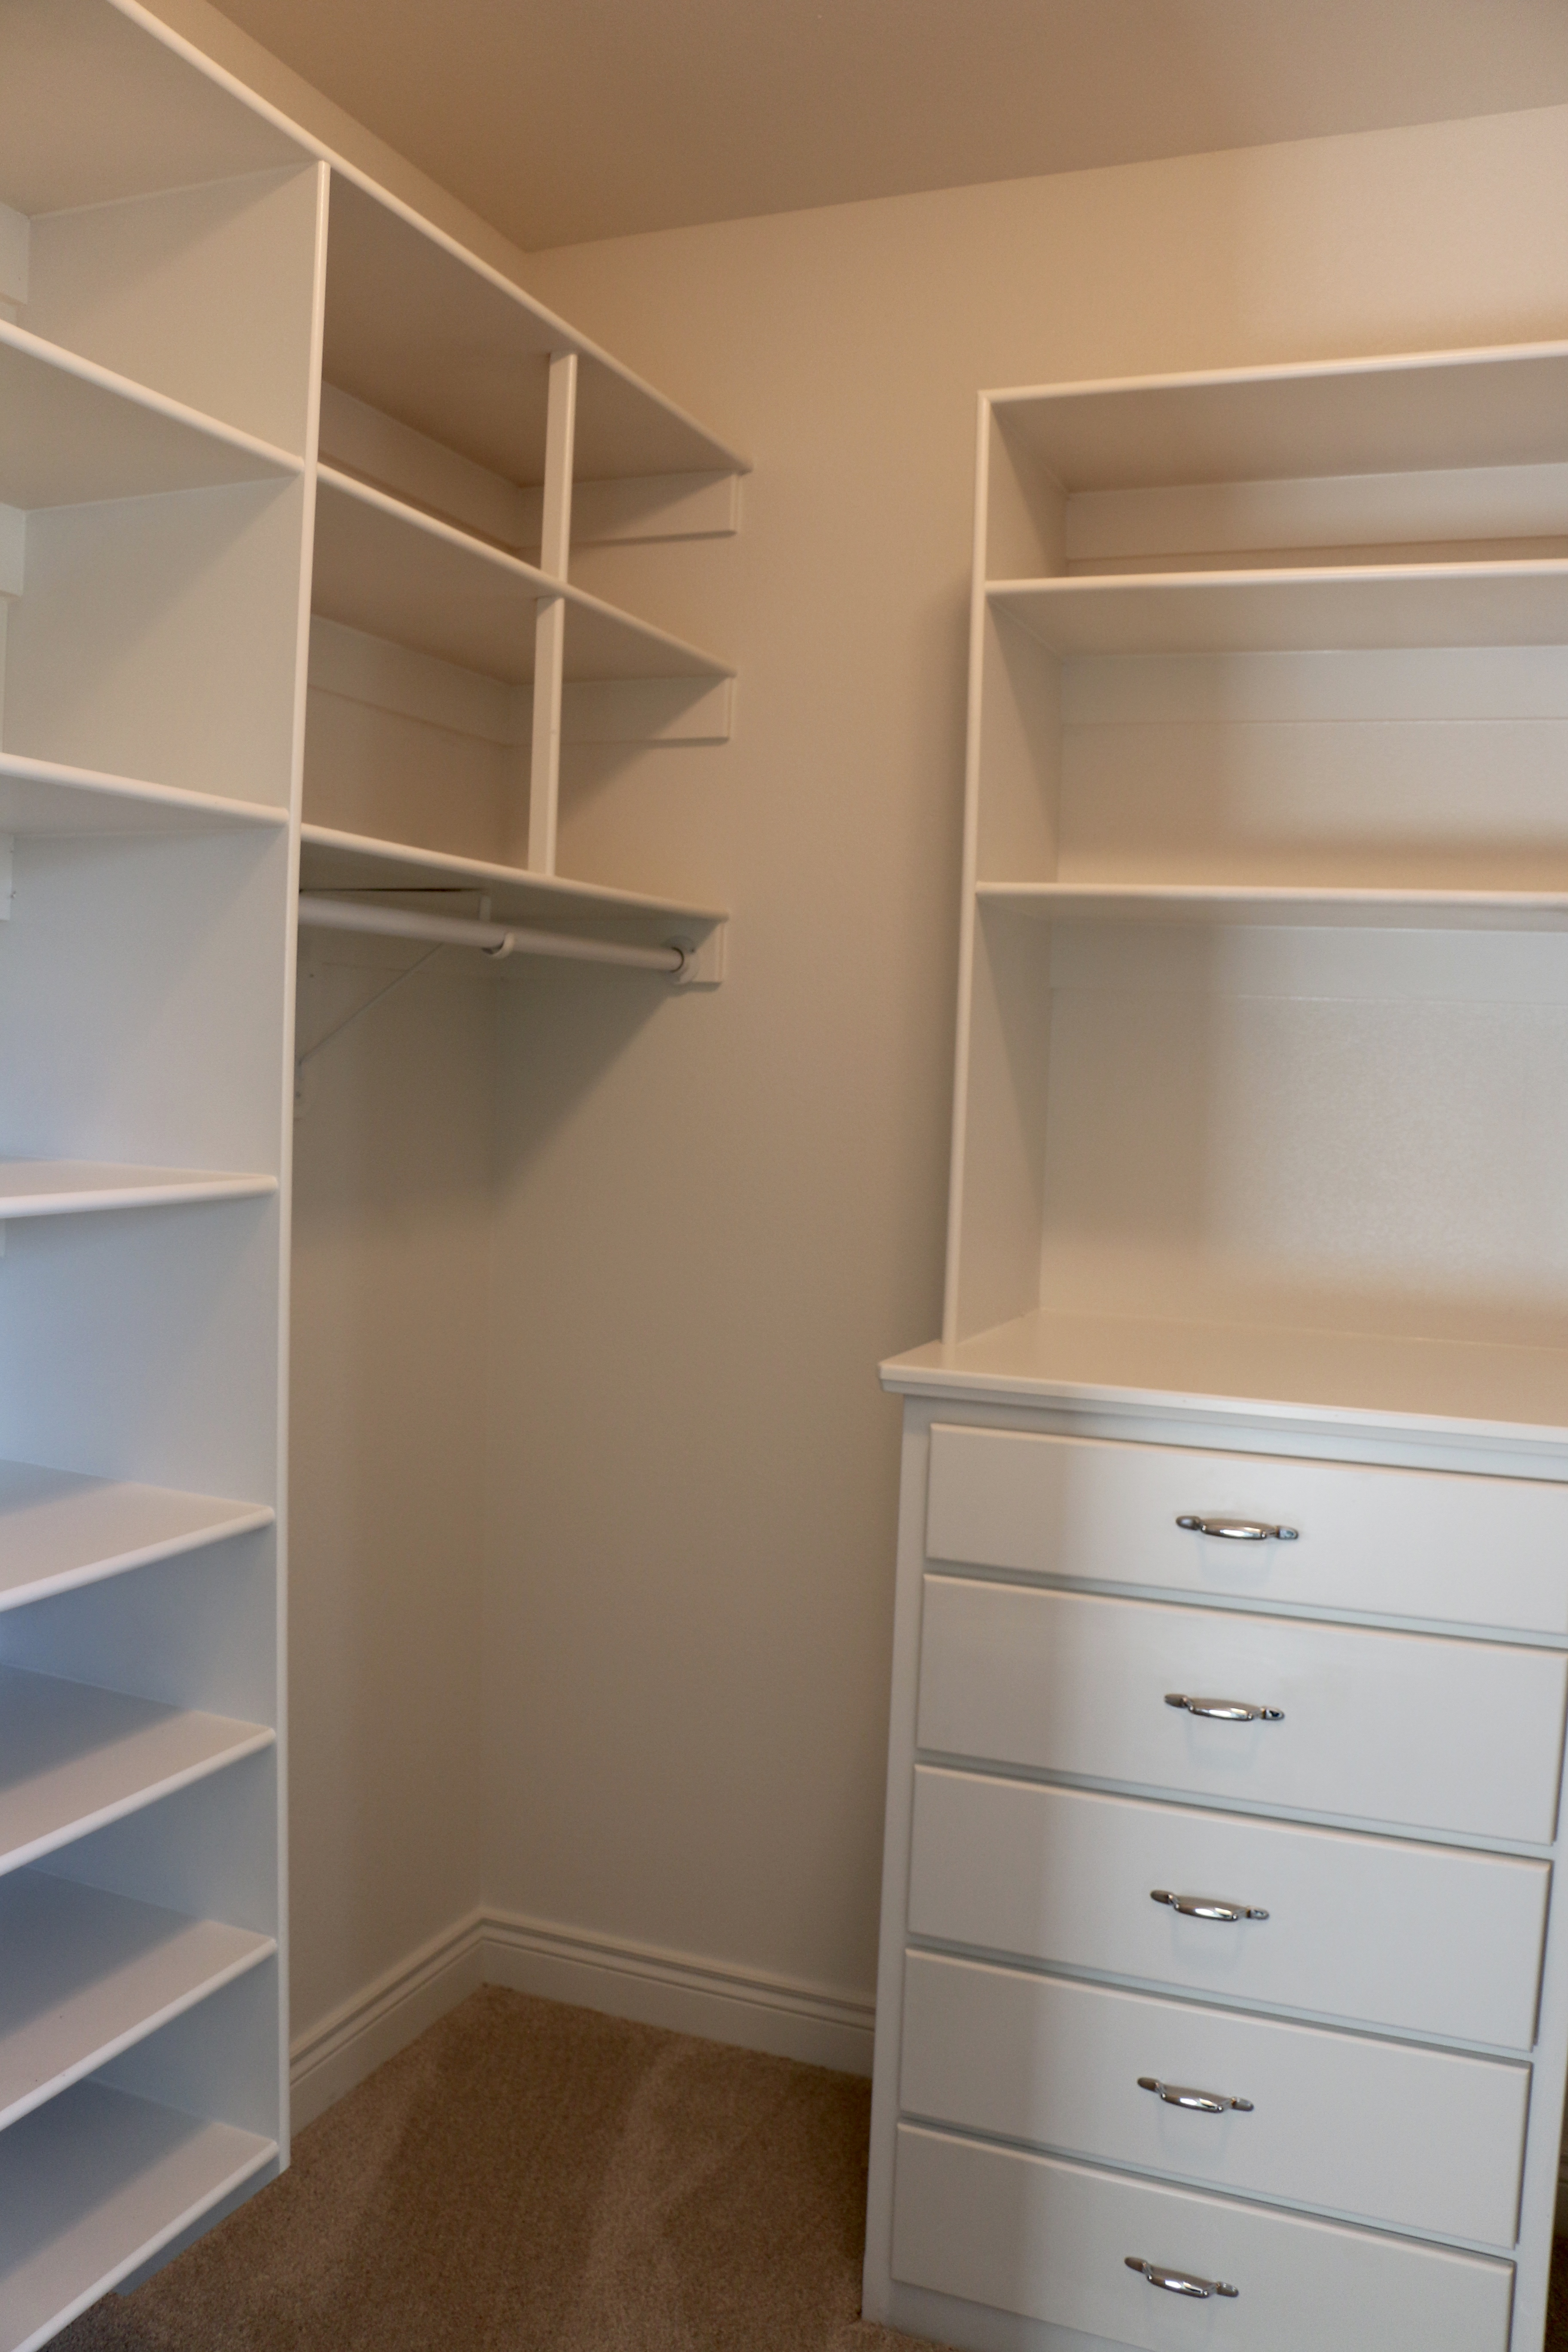 Built-in chest in each closet